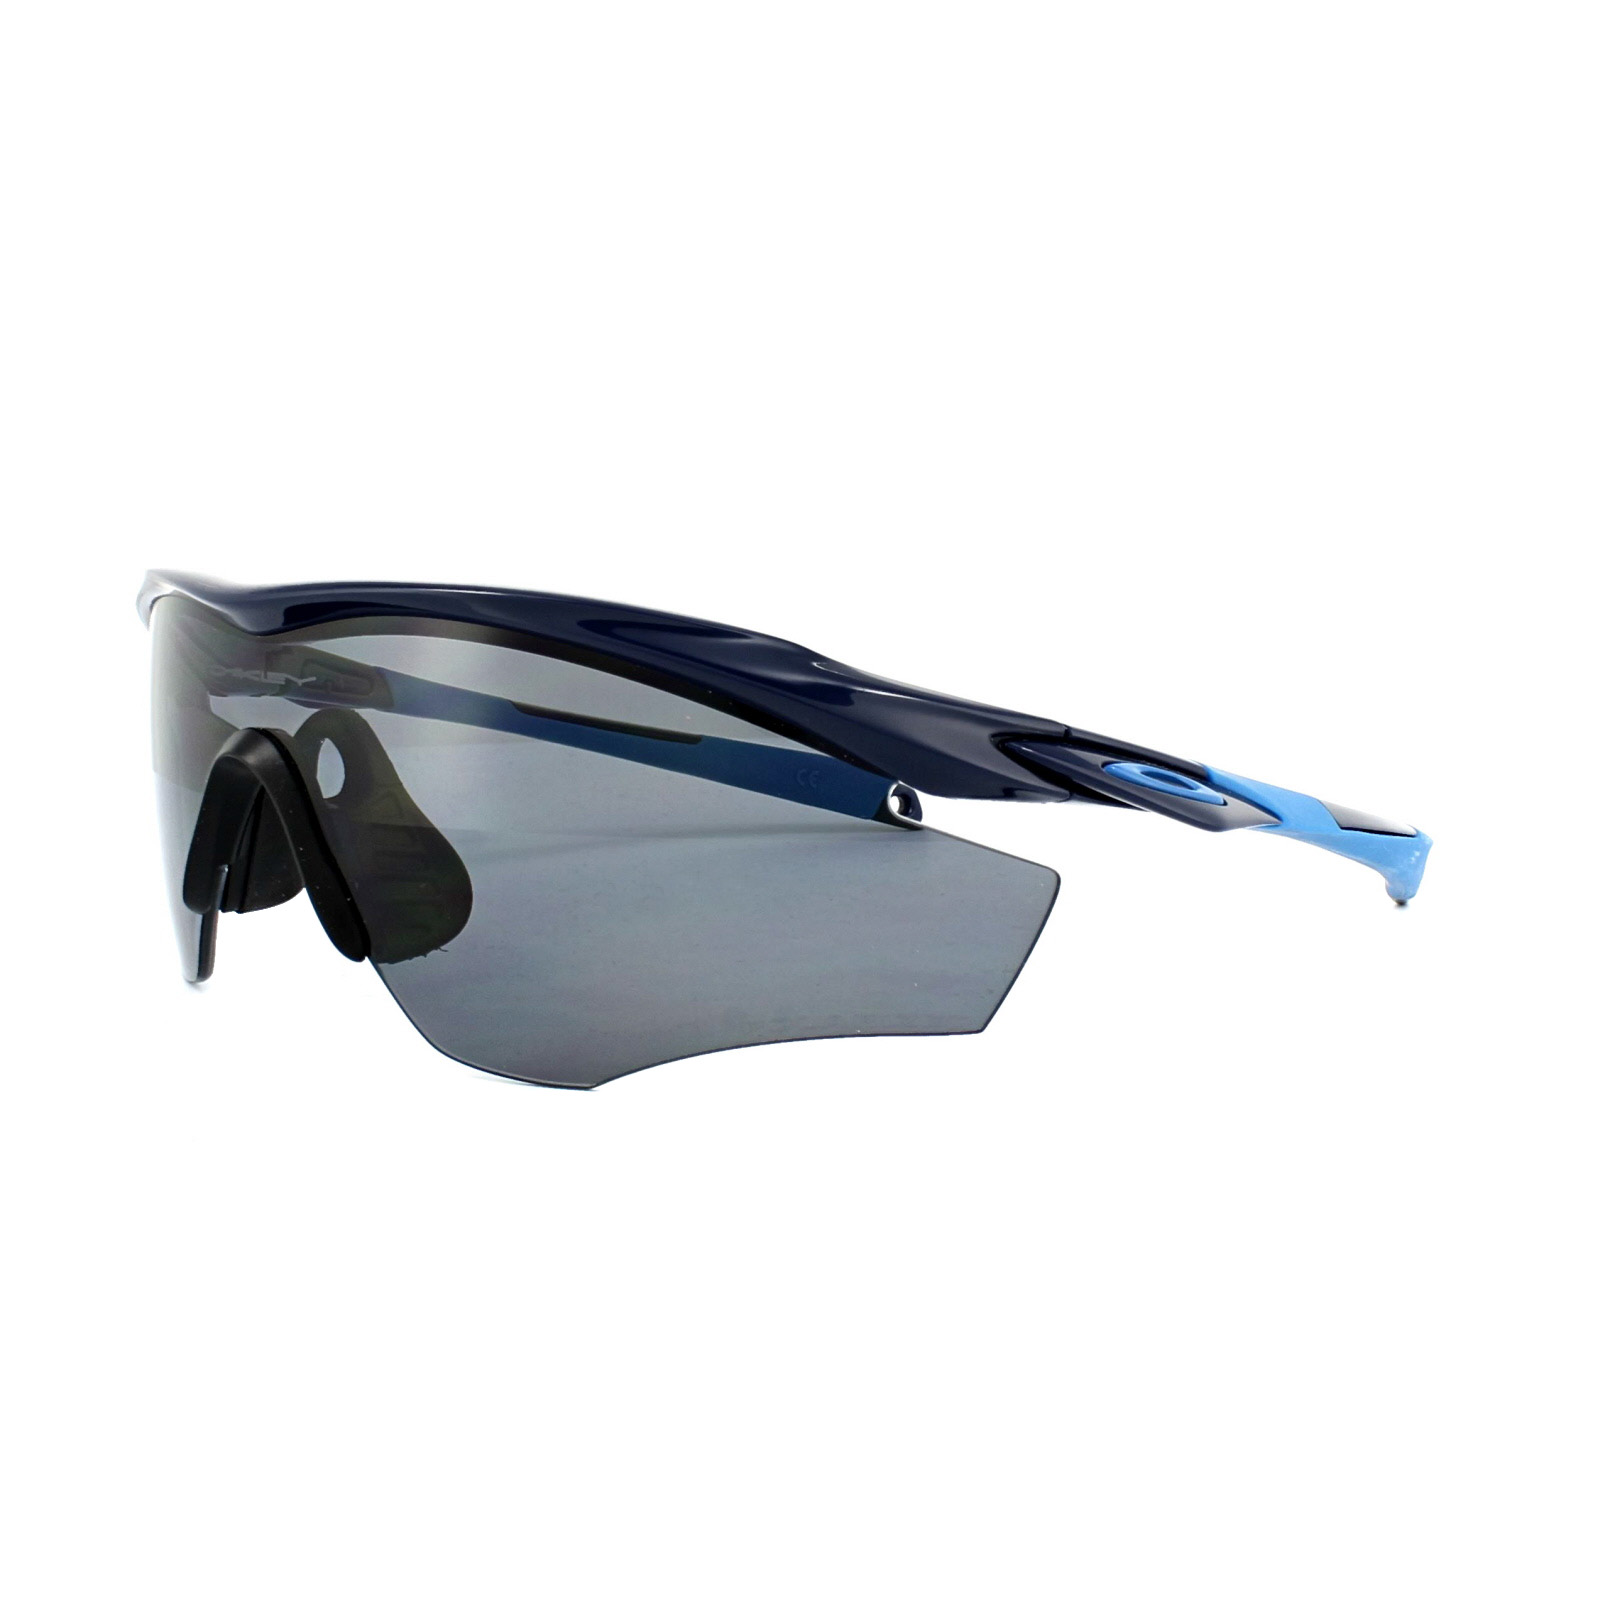 4feaf55e14 Oakley Jupiter Navy Frame Polarized